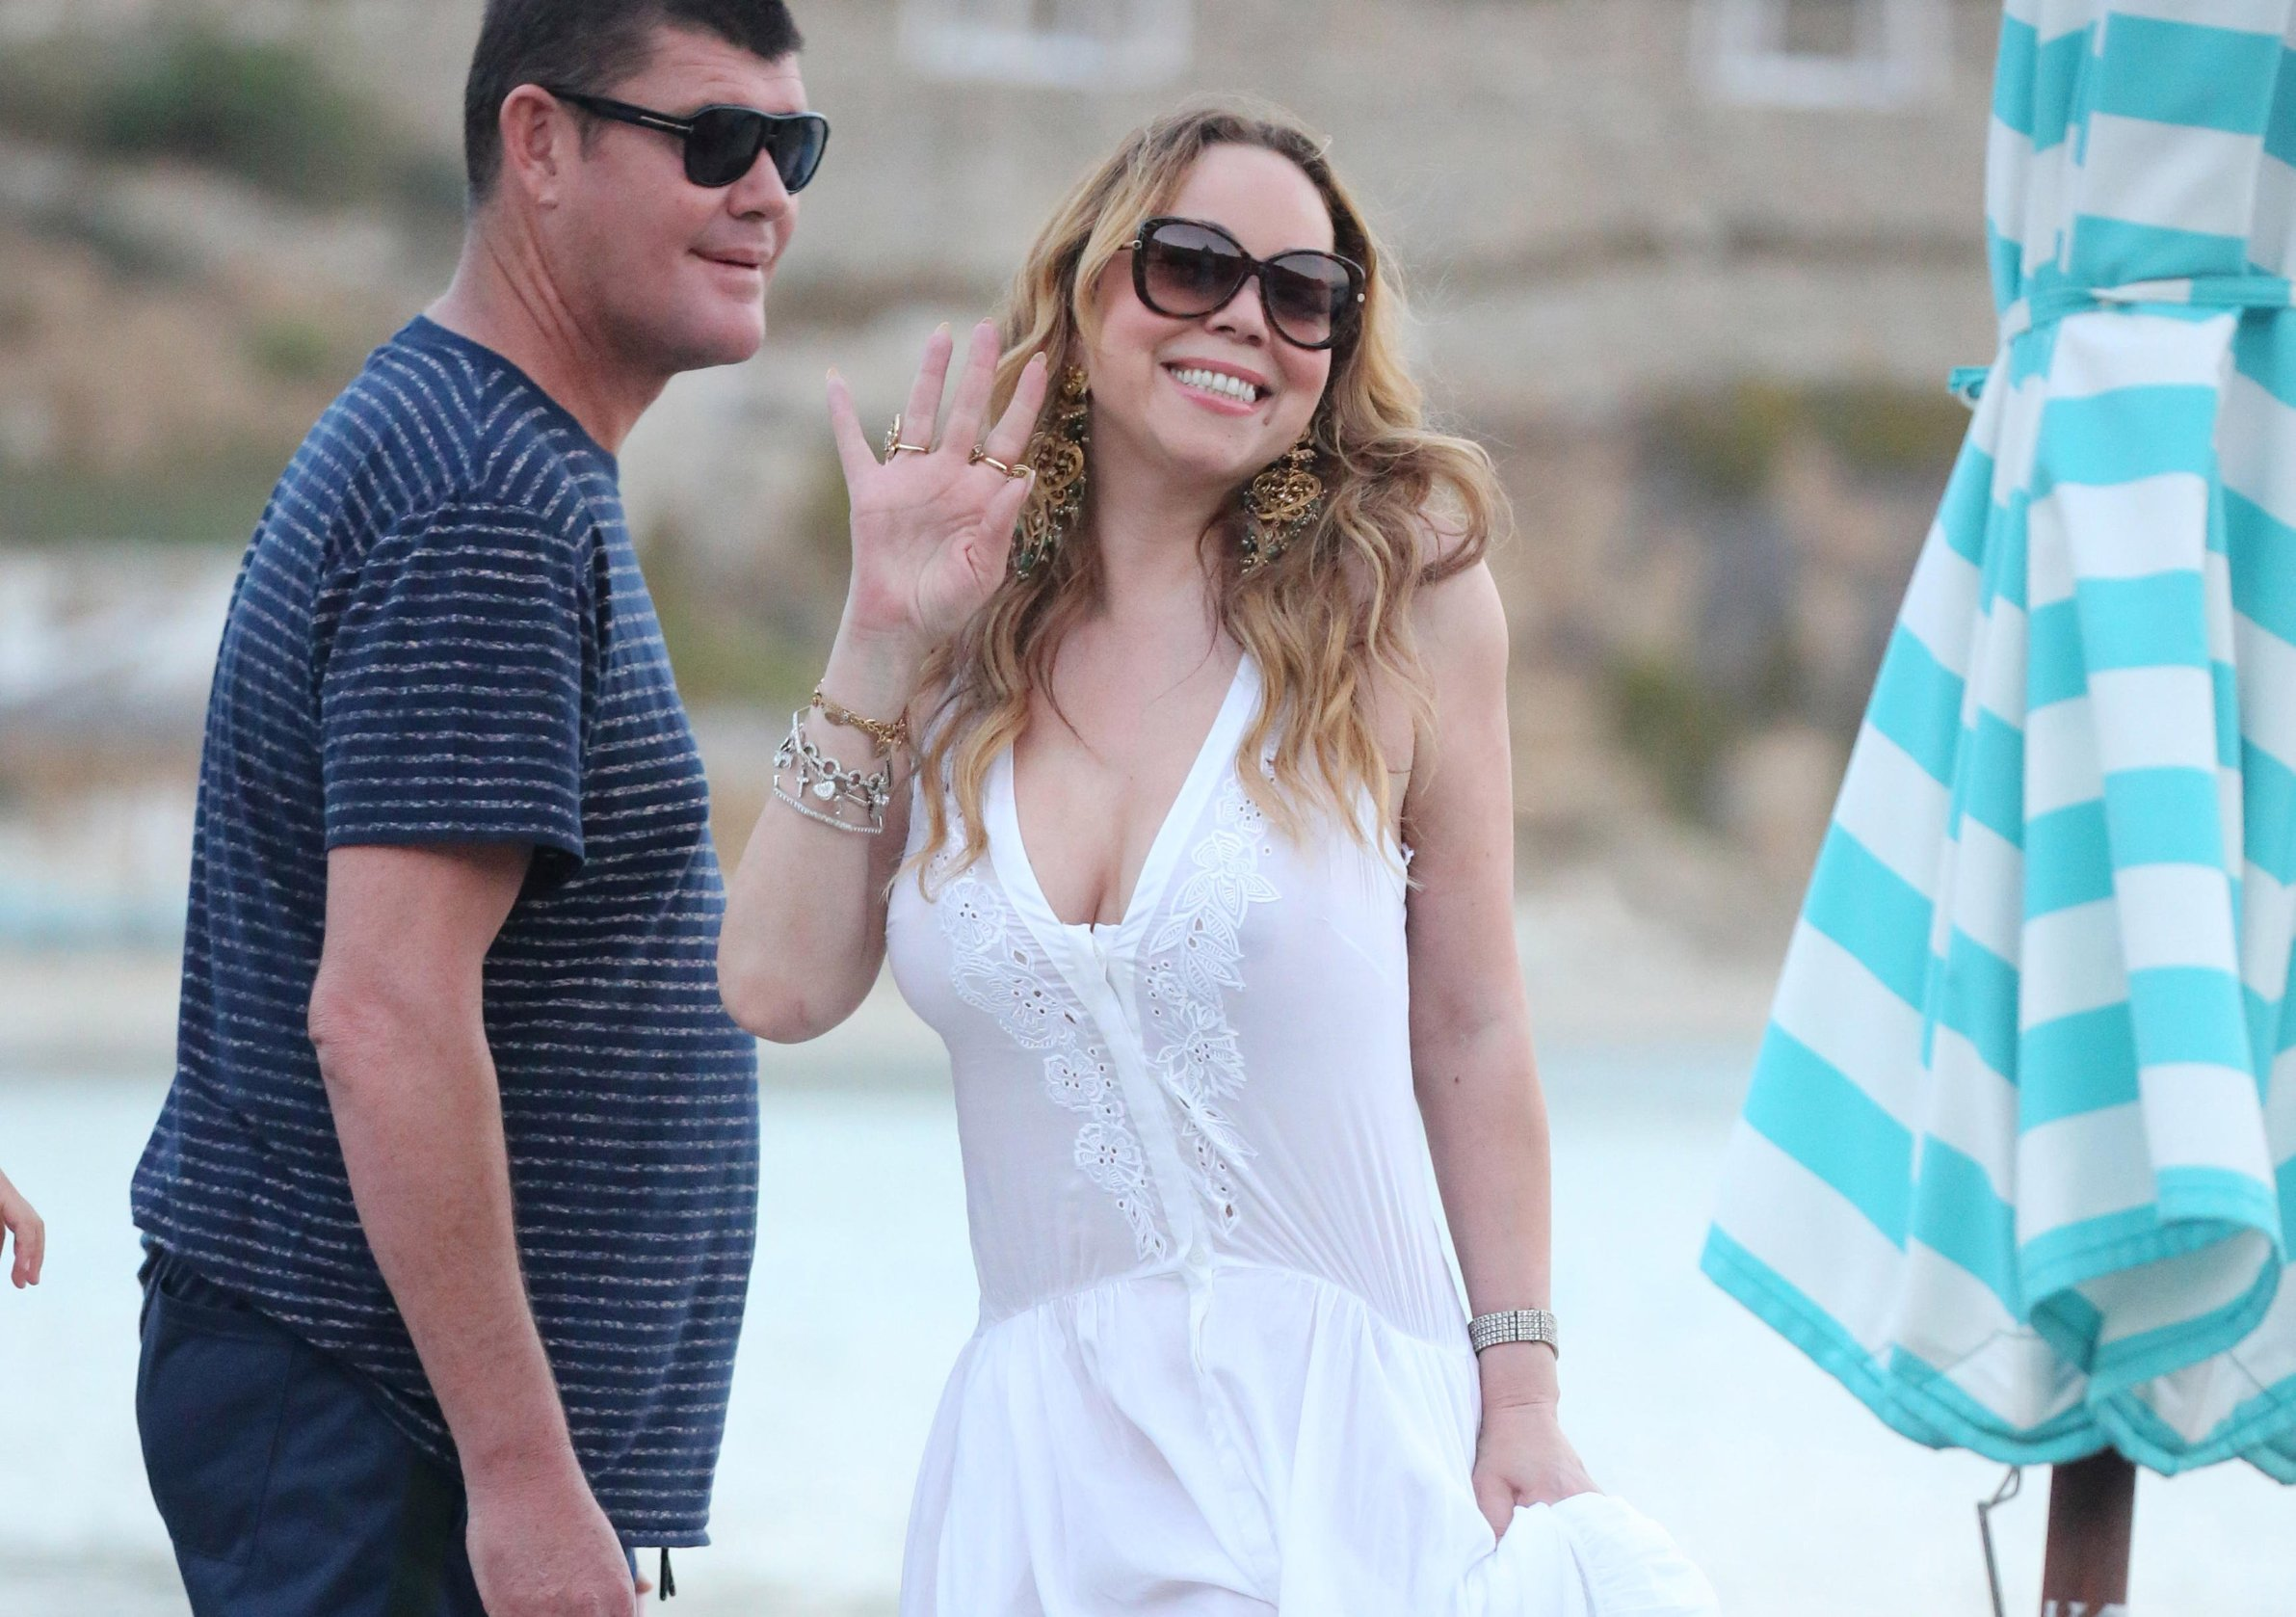 WORLDWIDE GREECE OUT -  EXCLUSIVE!! POOL SET MAVRIXONLINE/LOOKPRESS - American singer Mariah Carey, her children and boyfriend James Packer arrive on a yacht in Mykonos for the second time. The couple was also spotted dining in a restaurant along with friends. Mariah was all smiles while she was out, looking gorgeous in a flowing white dress. Mykonos, Greece. 22nd September 2016., Image: 300751658, License: Rights-managed, Restrictions: MAVRIXONLINE.COM - +1 305 542 9275. Byline, credit, TV usage, web usage or linkback must read MAVRIXONLINE/LOOKPRESS. Failure to byline correctly will incur double the agreed fee. Fees must be agreed prior to publication., Model Release: no, Credit line: Profimedia, Mavrixphoto